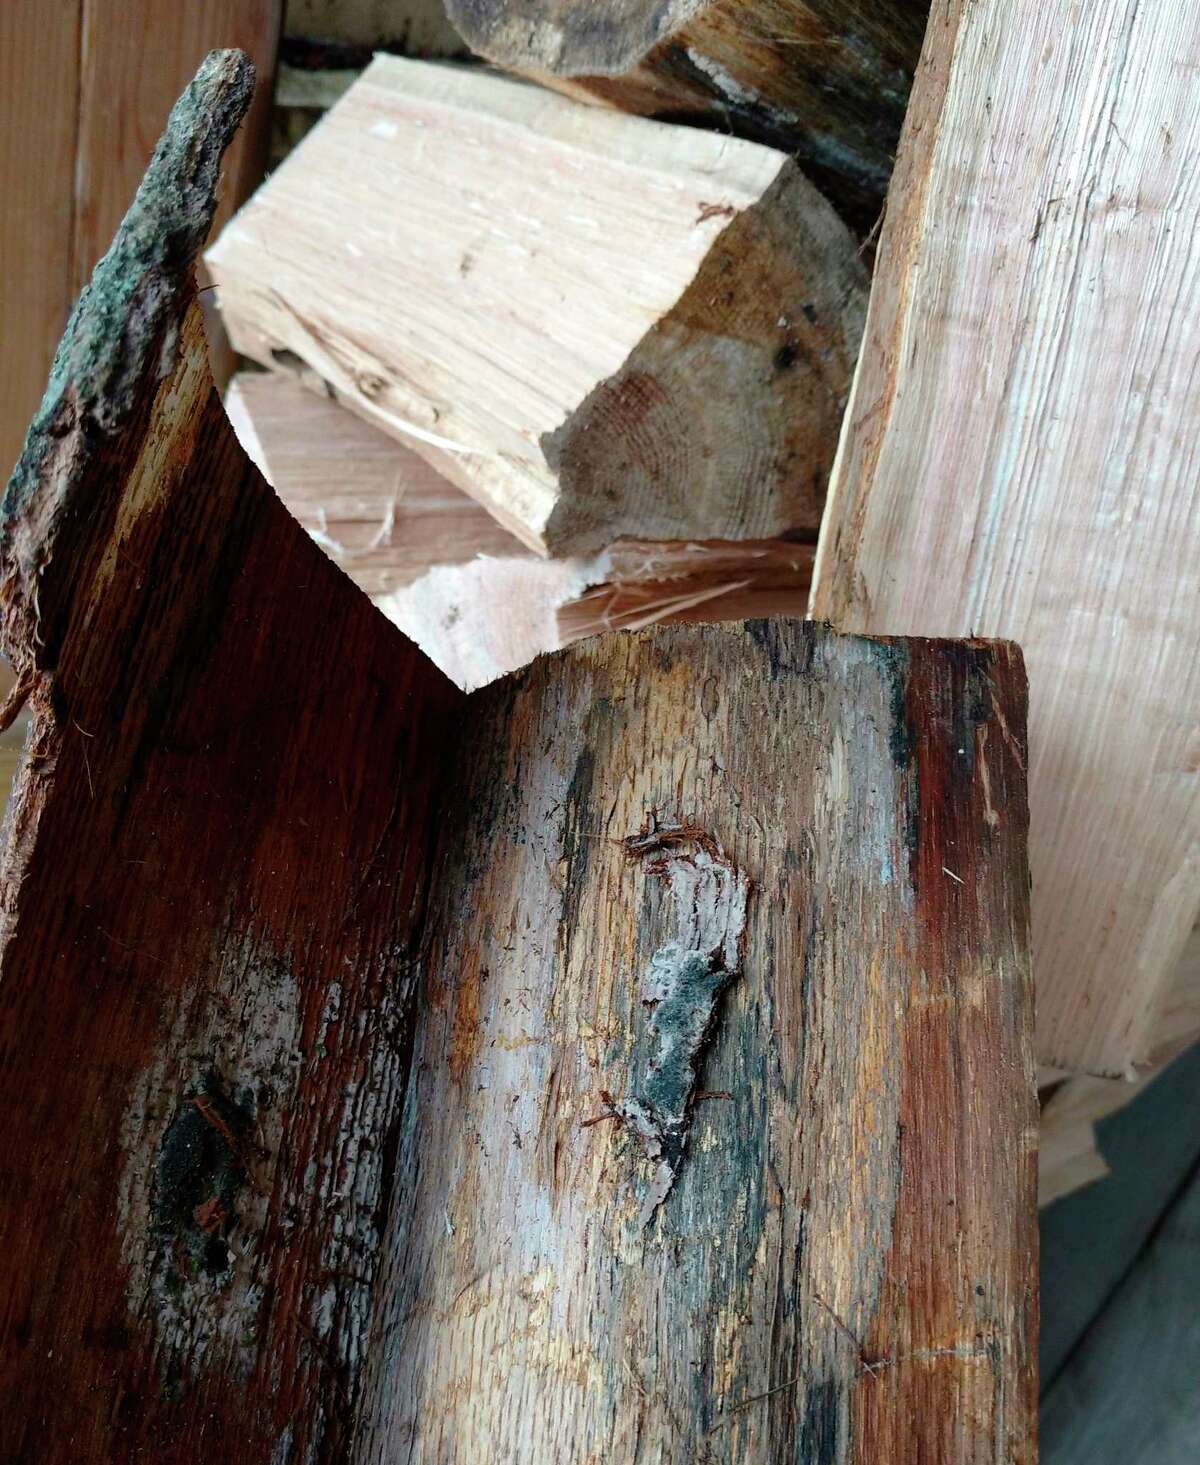 Oak wilt fungus, found under the bark of infested trees, can spread oak wilt to new locations through firewood movement. (Courtesy photo)